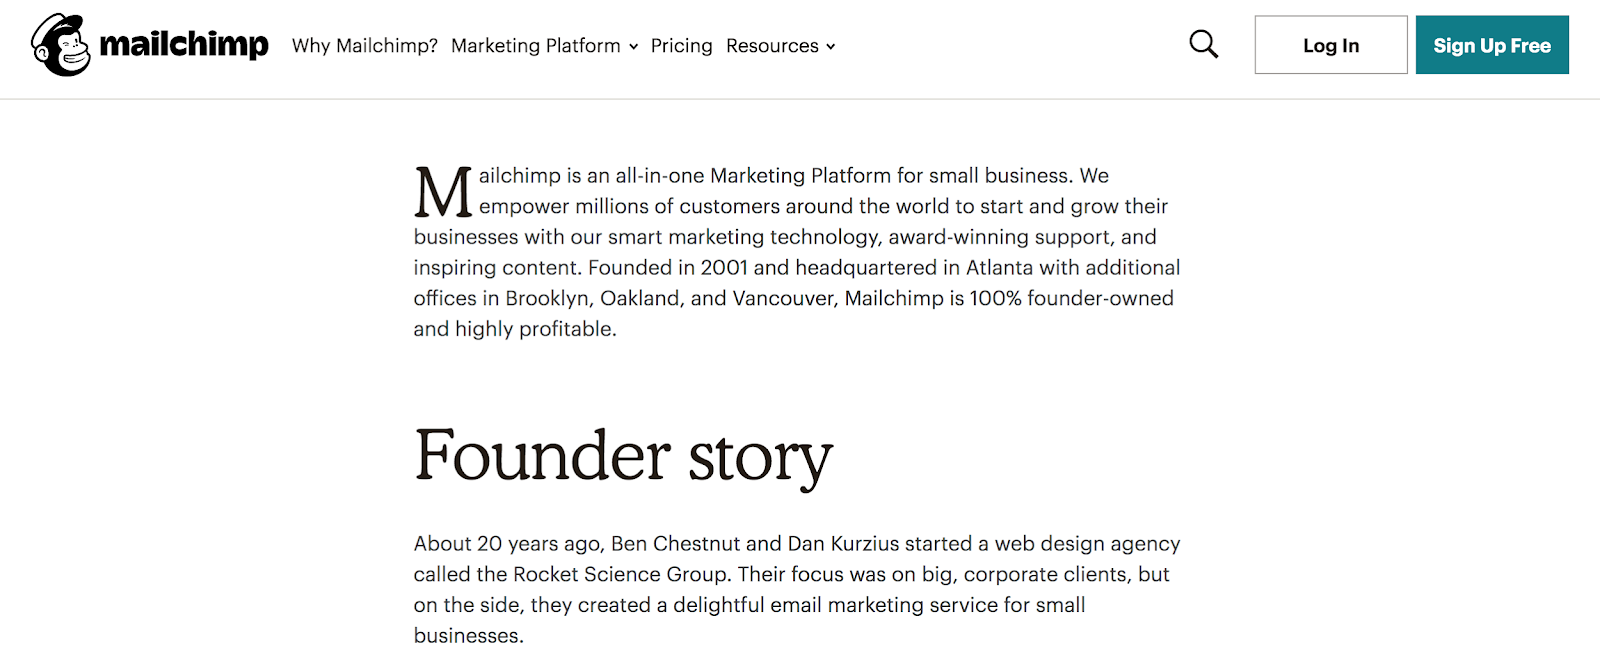 Mailchimp Founder story